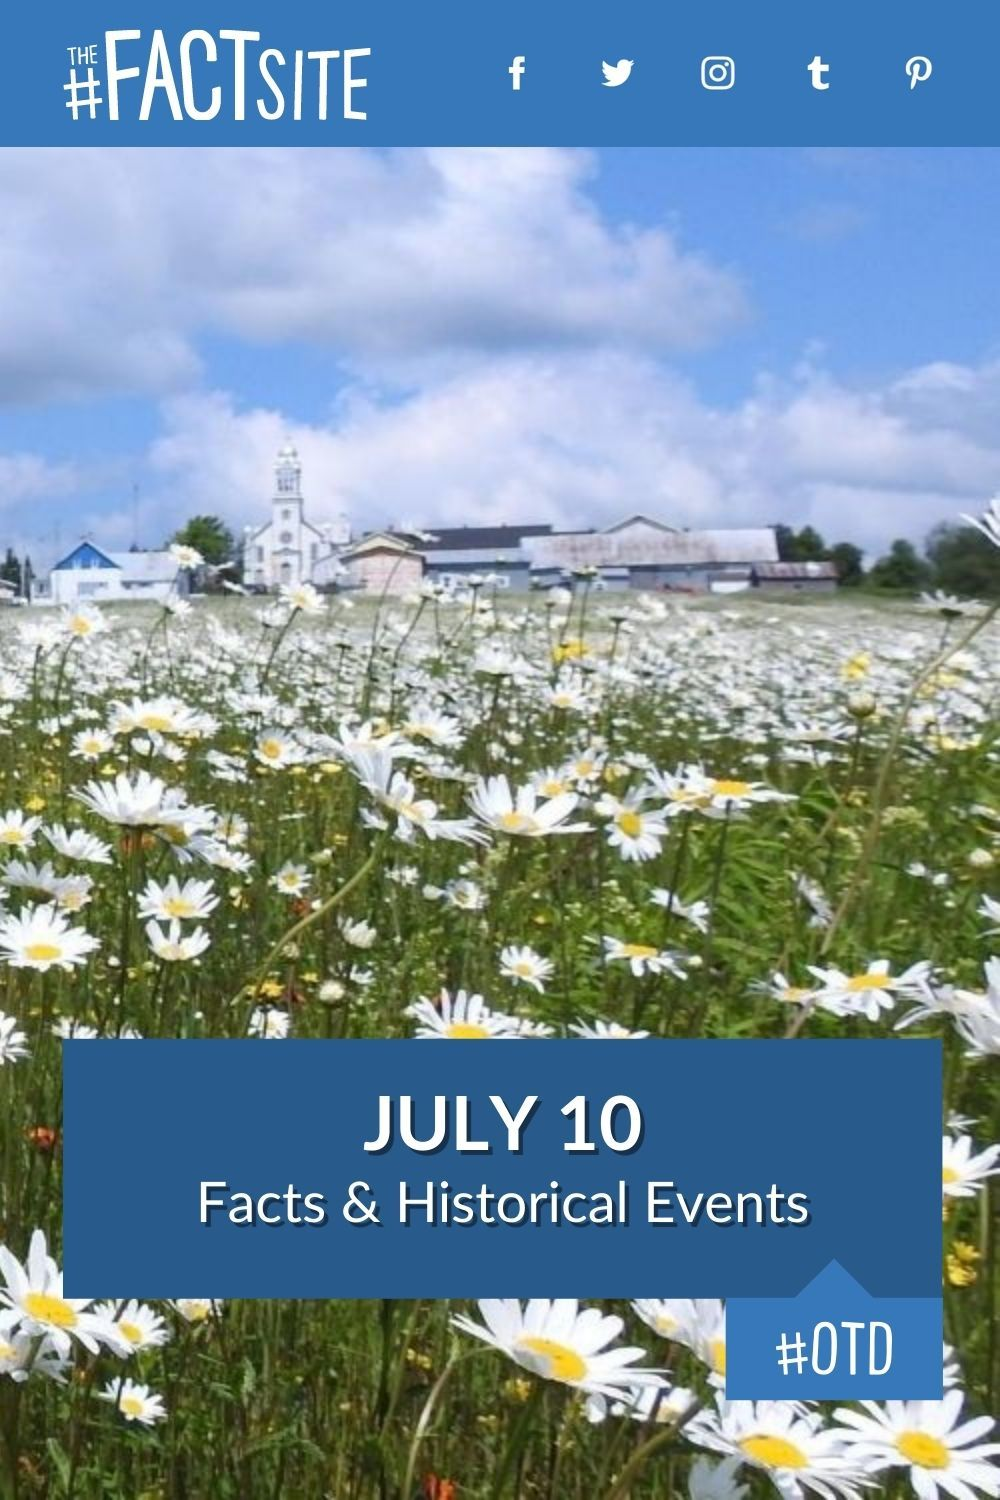 Facts & Historic Events That Happened on July 10